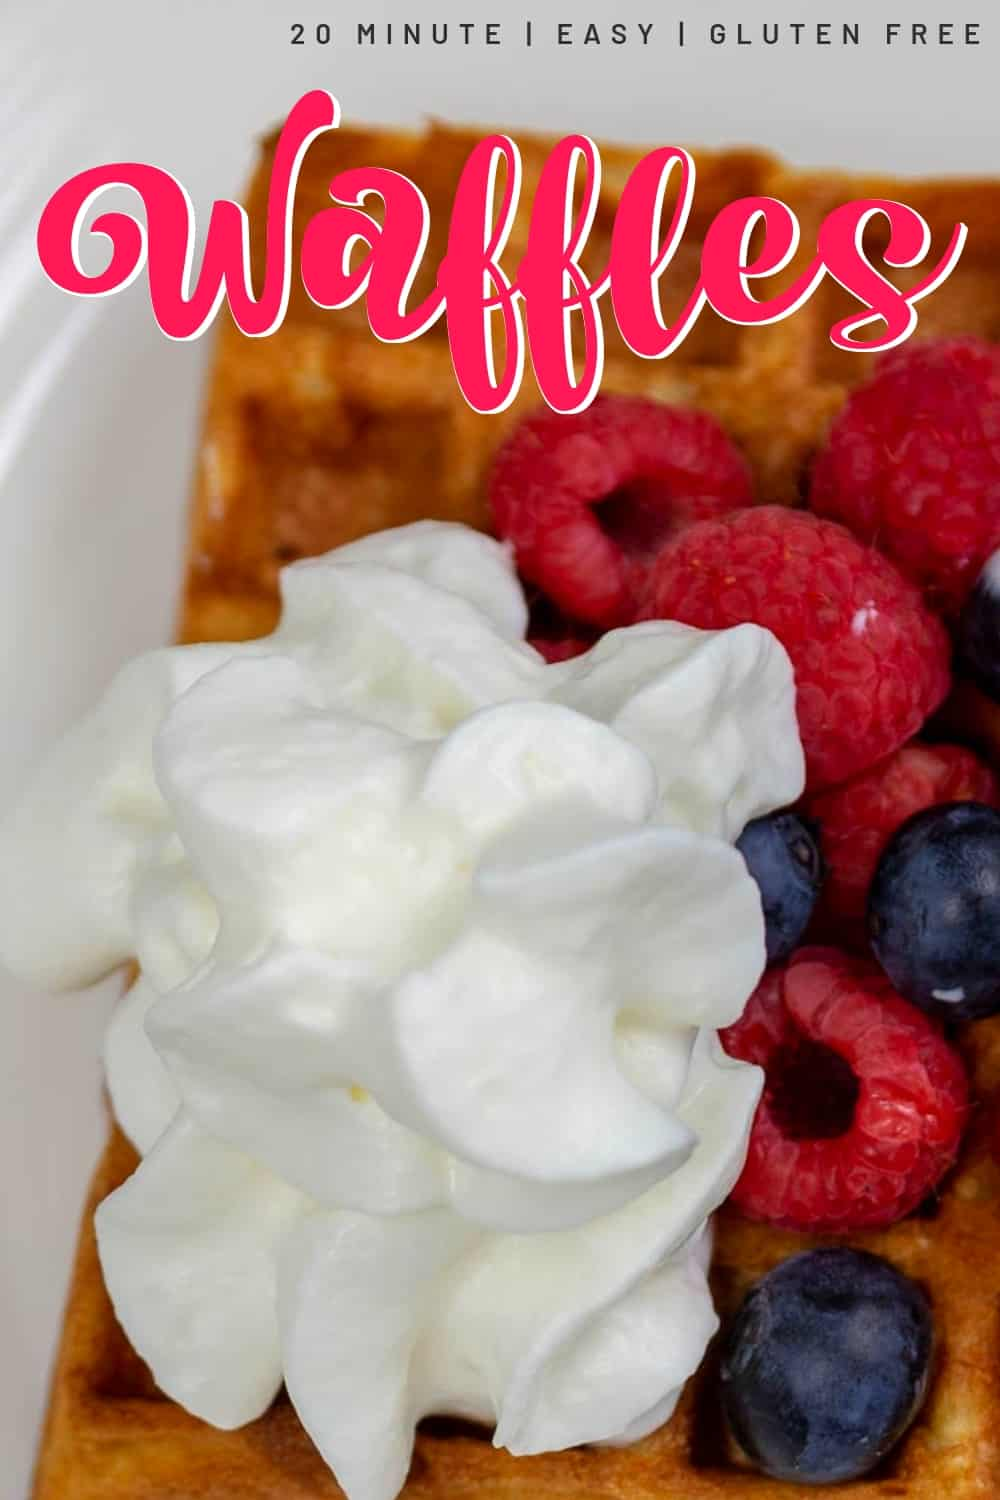 Belgian Waffles, gluten free topped with fresh berries